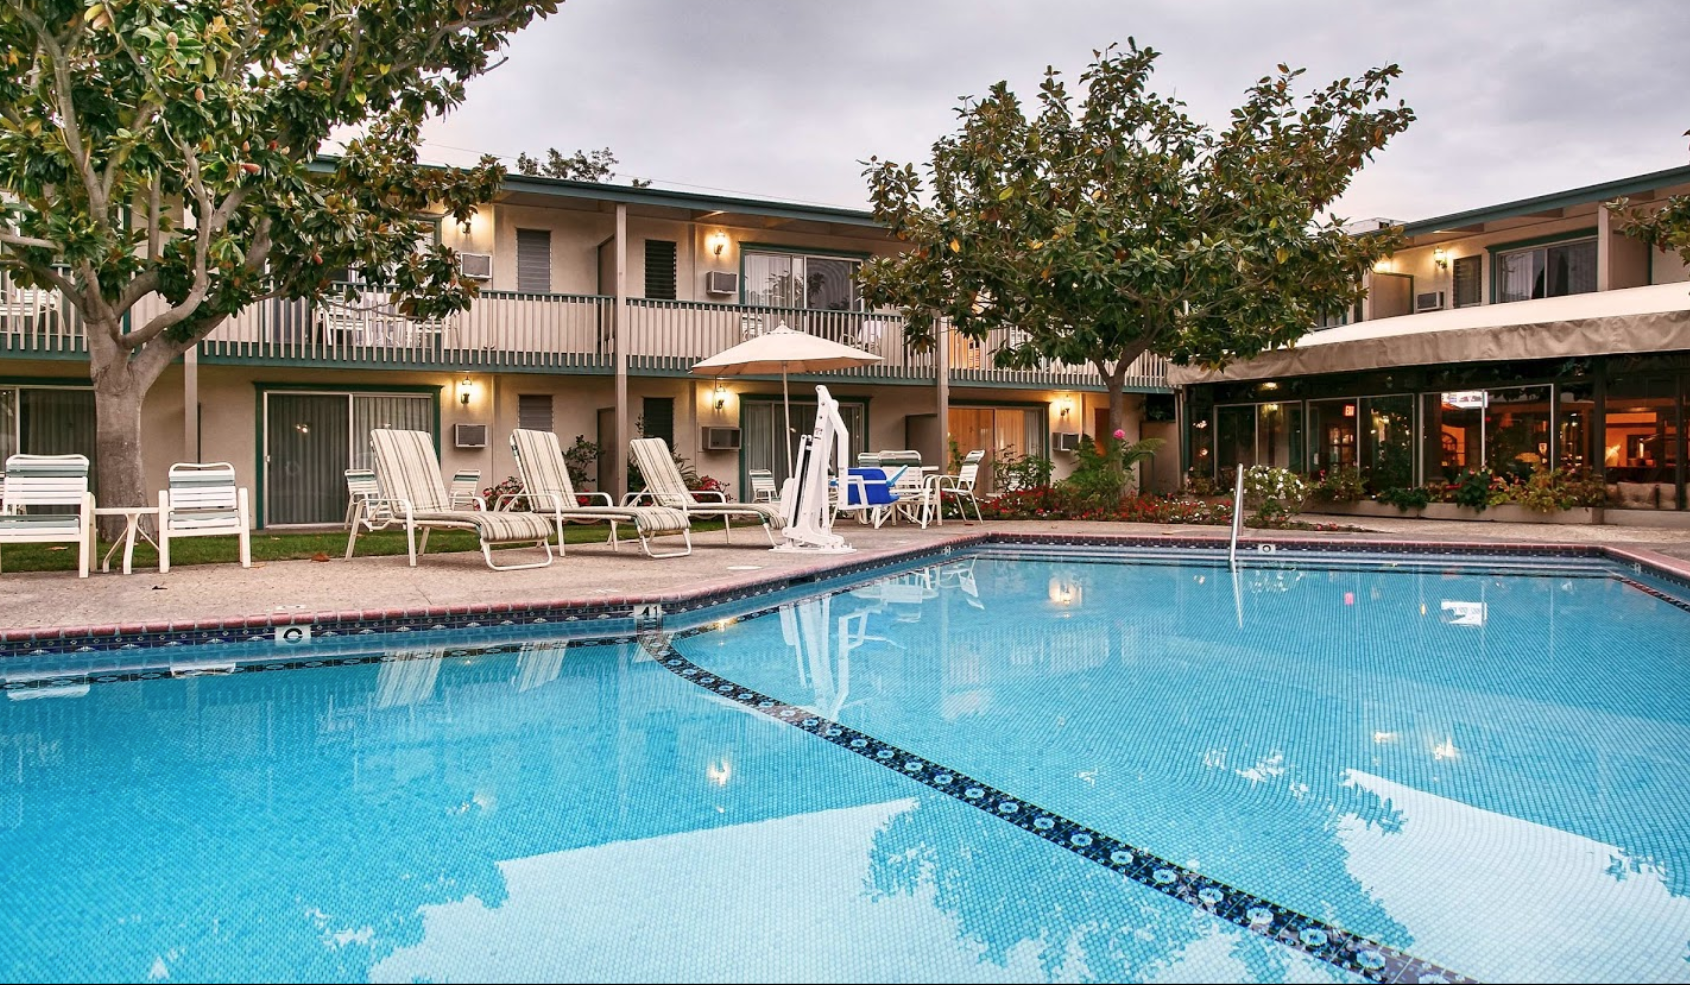 Best Western Plus Encina Inn & Suites - 2220 Bath St, Santa Barbara, CA 93105Call to reserve with the group code: Santa Swing 800-526-2282Double and Single rooms (before taxes)$179 for 12/28 and $159 per night for 12/29-1/1/20 (avg. $164.)1.8 Miles from the Carrillo Ballroom and where the classes will be held (6 minute drive)